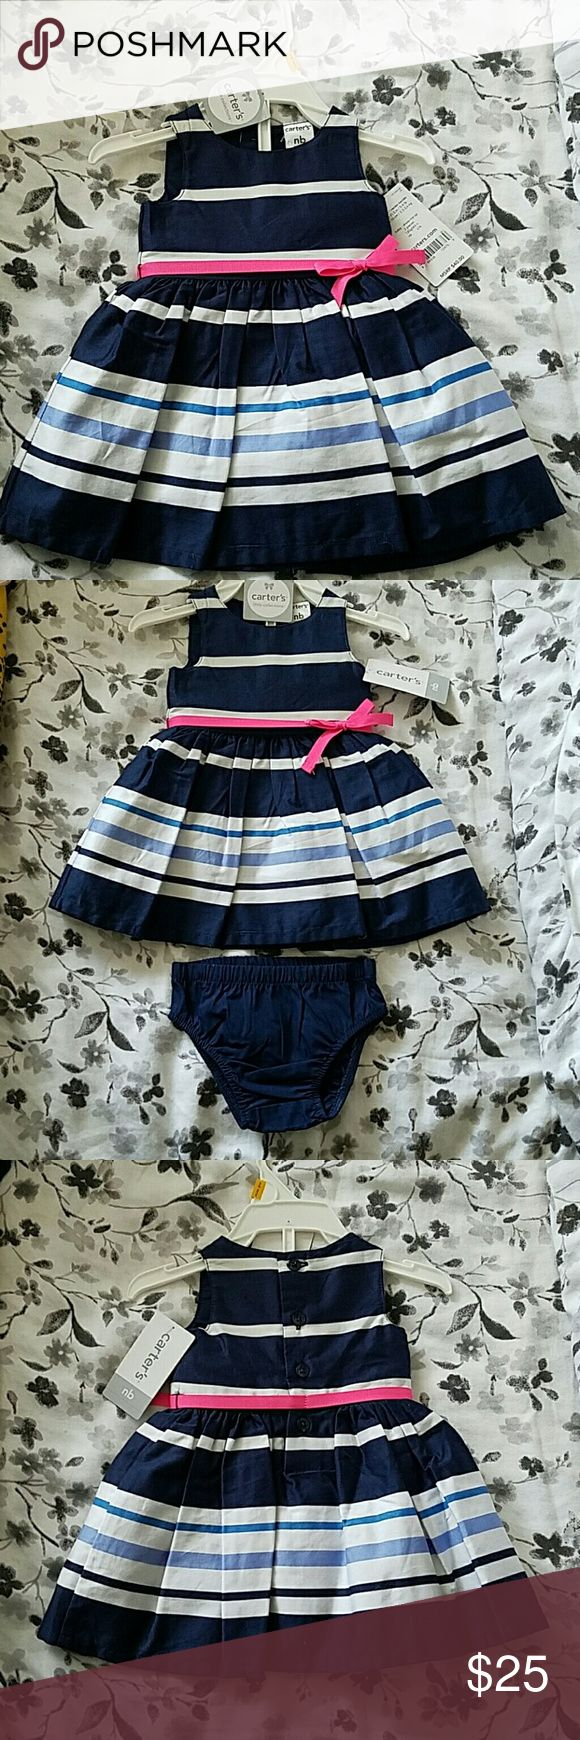 Navy blue and white dress Navy blue and white dress with hot pink ribboned waist and bow. Dress includes the panties to cover the babies pamper. Carter's Dresses Formal